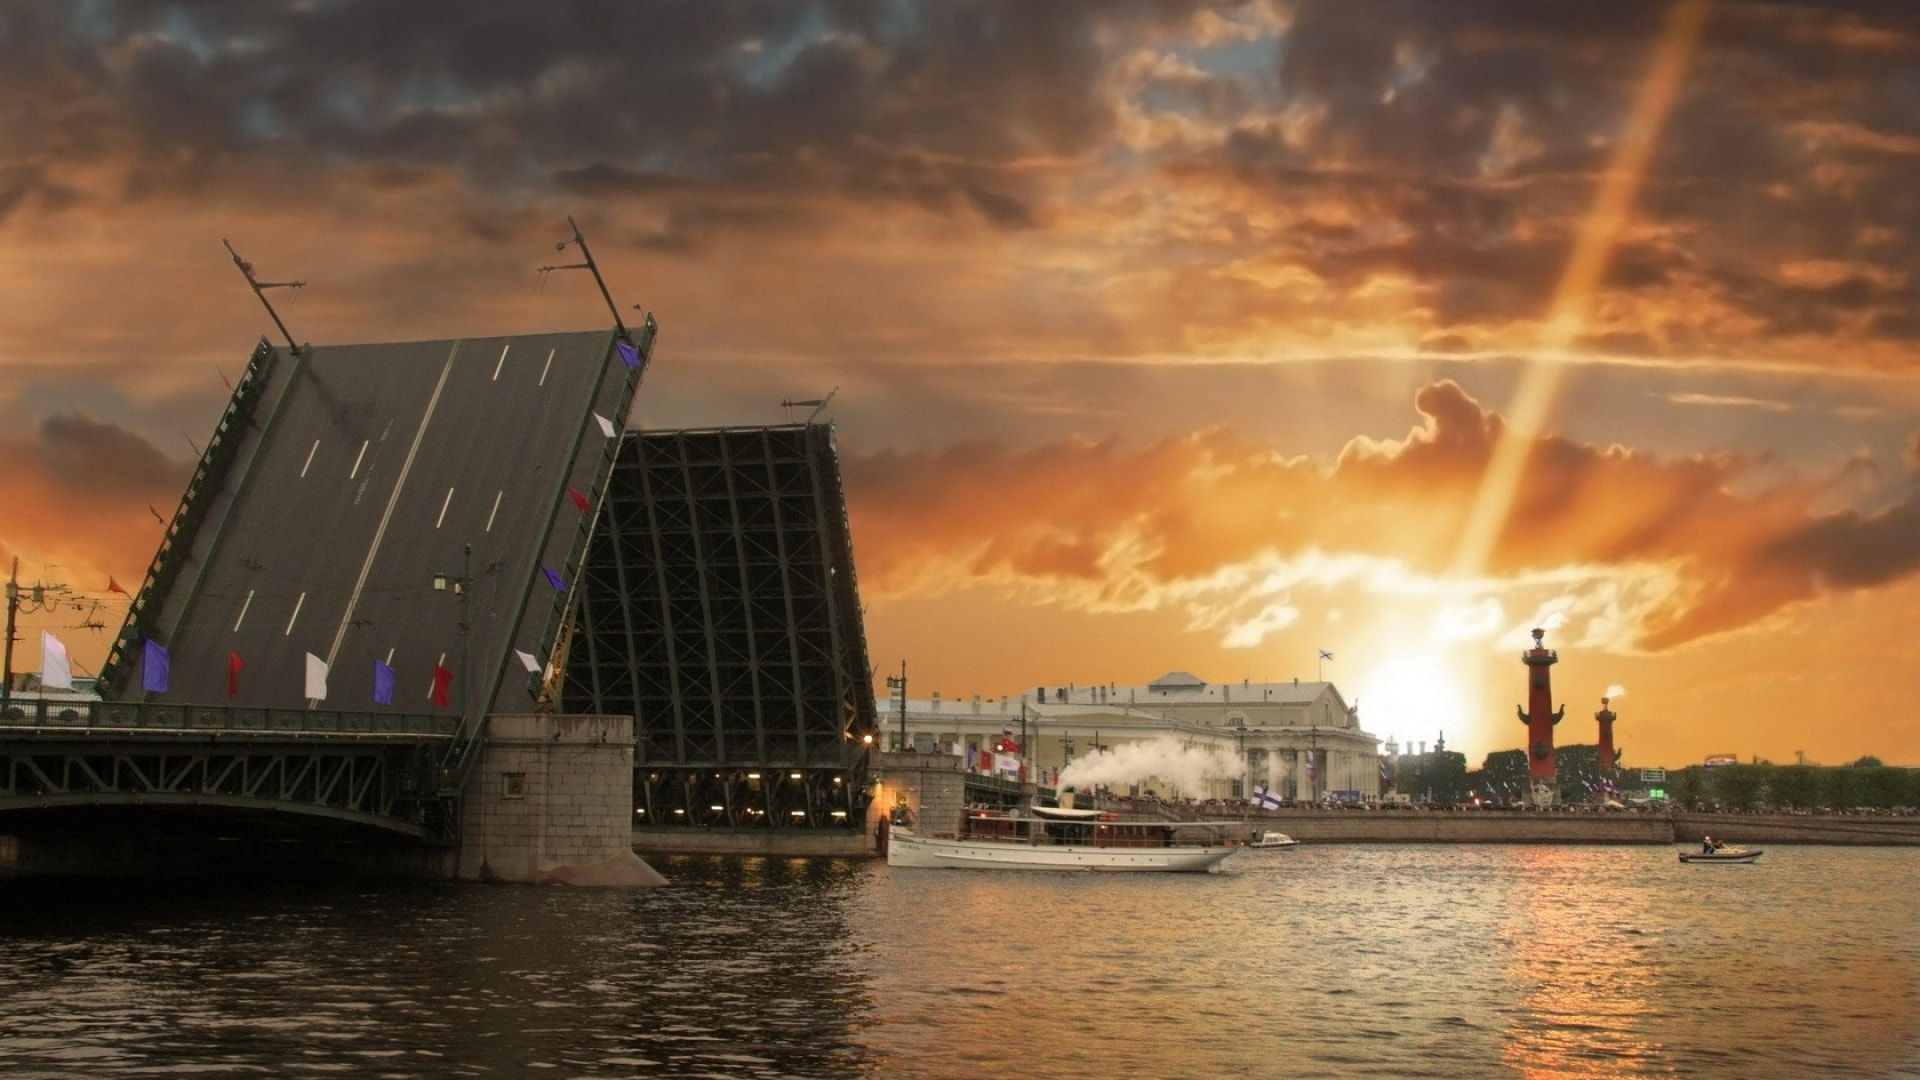 St. Petersburg widescreen wallpapers